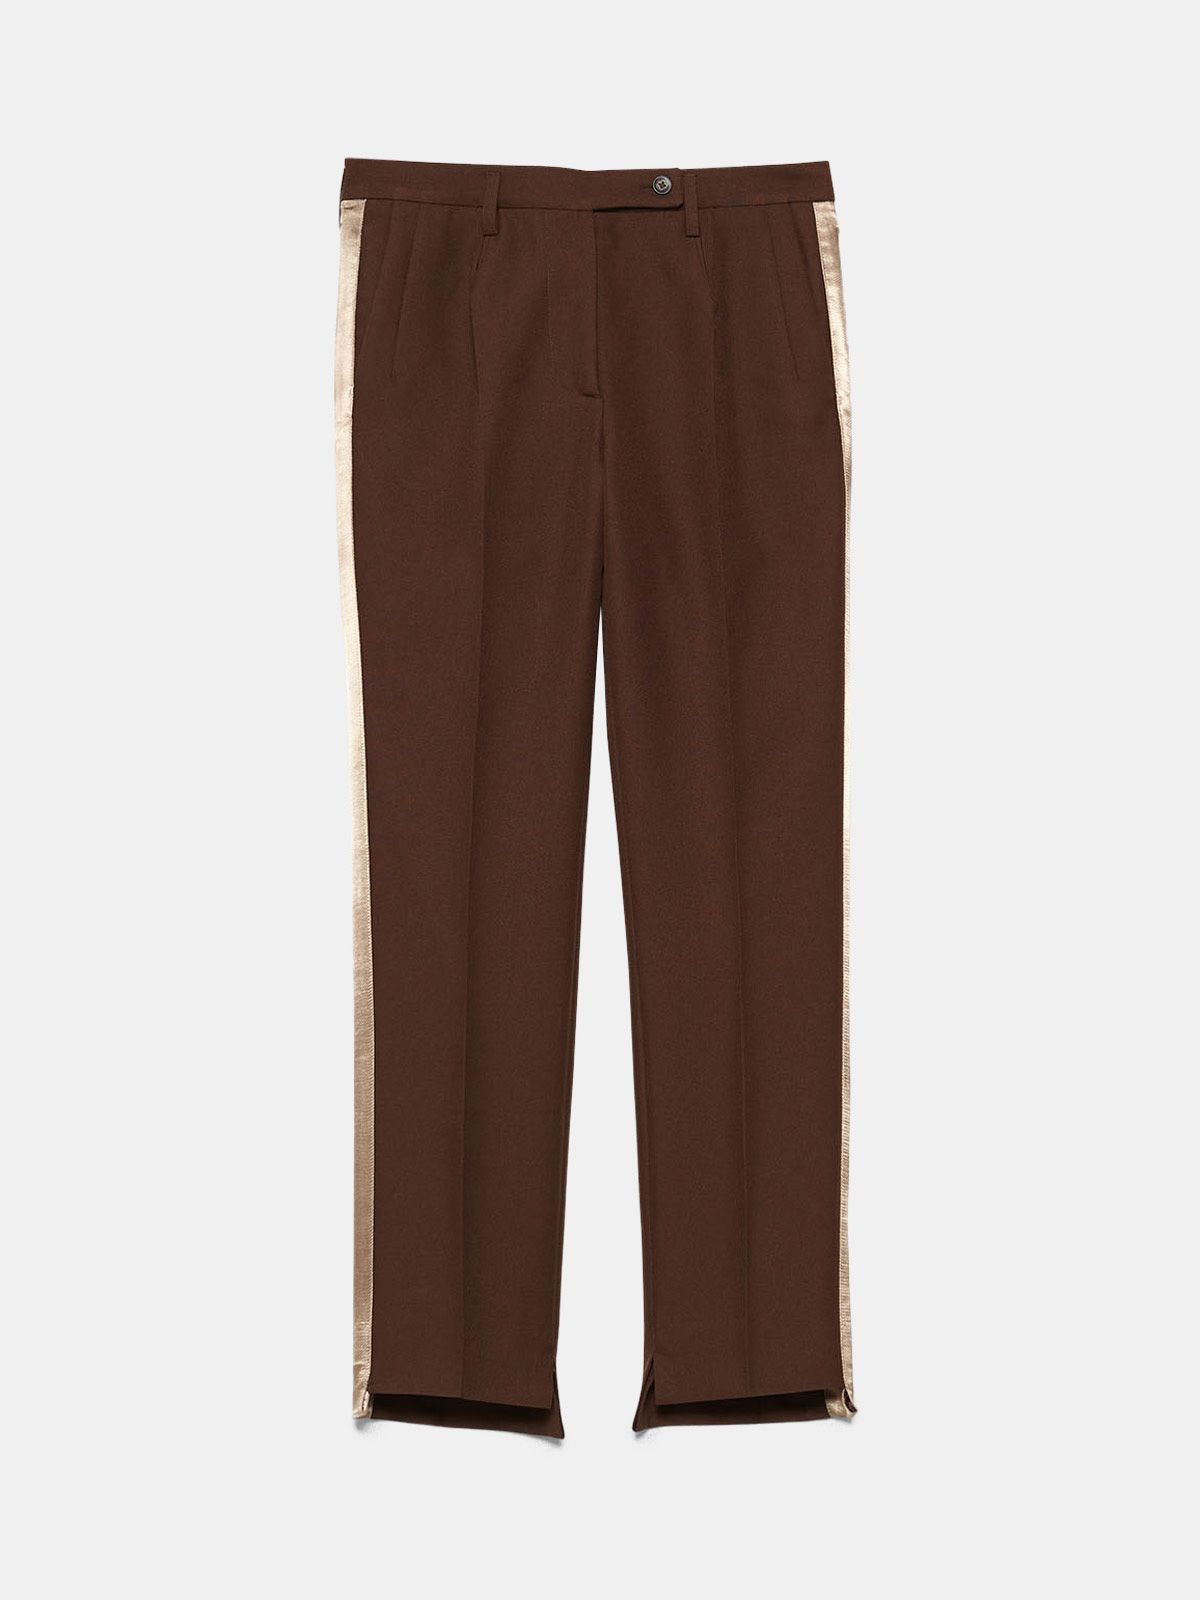 Golden Goose - Venice trousers in a technical fabric with satin inserts in